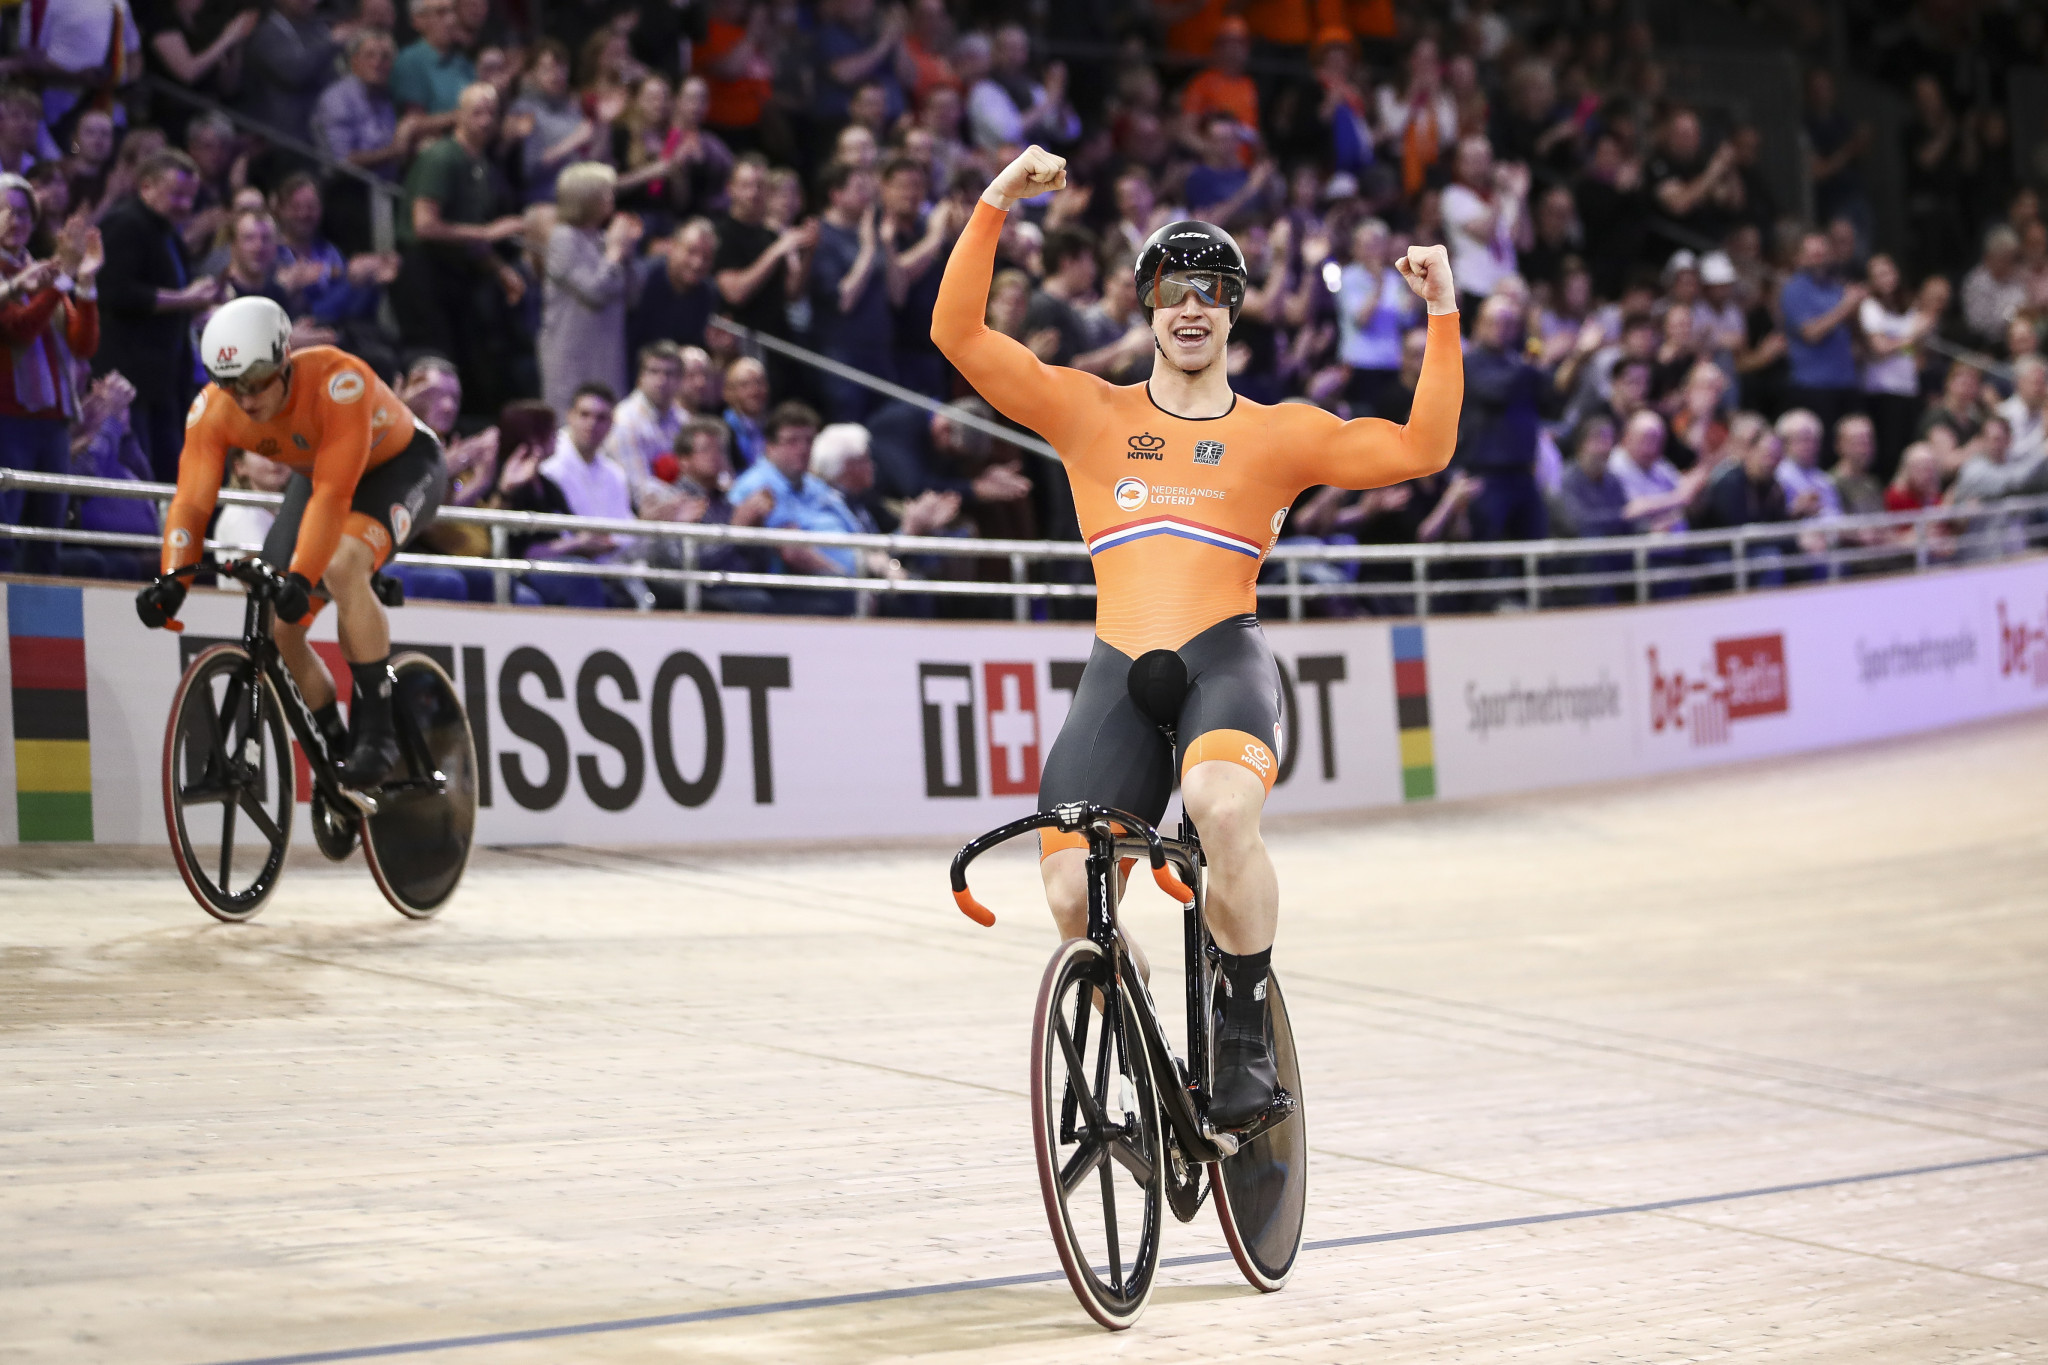 Harrie Lavreysen successfully defended his men's sprint title at the World Track Cycling Championships ©Getty Images